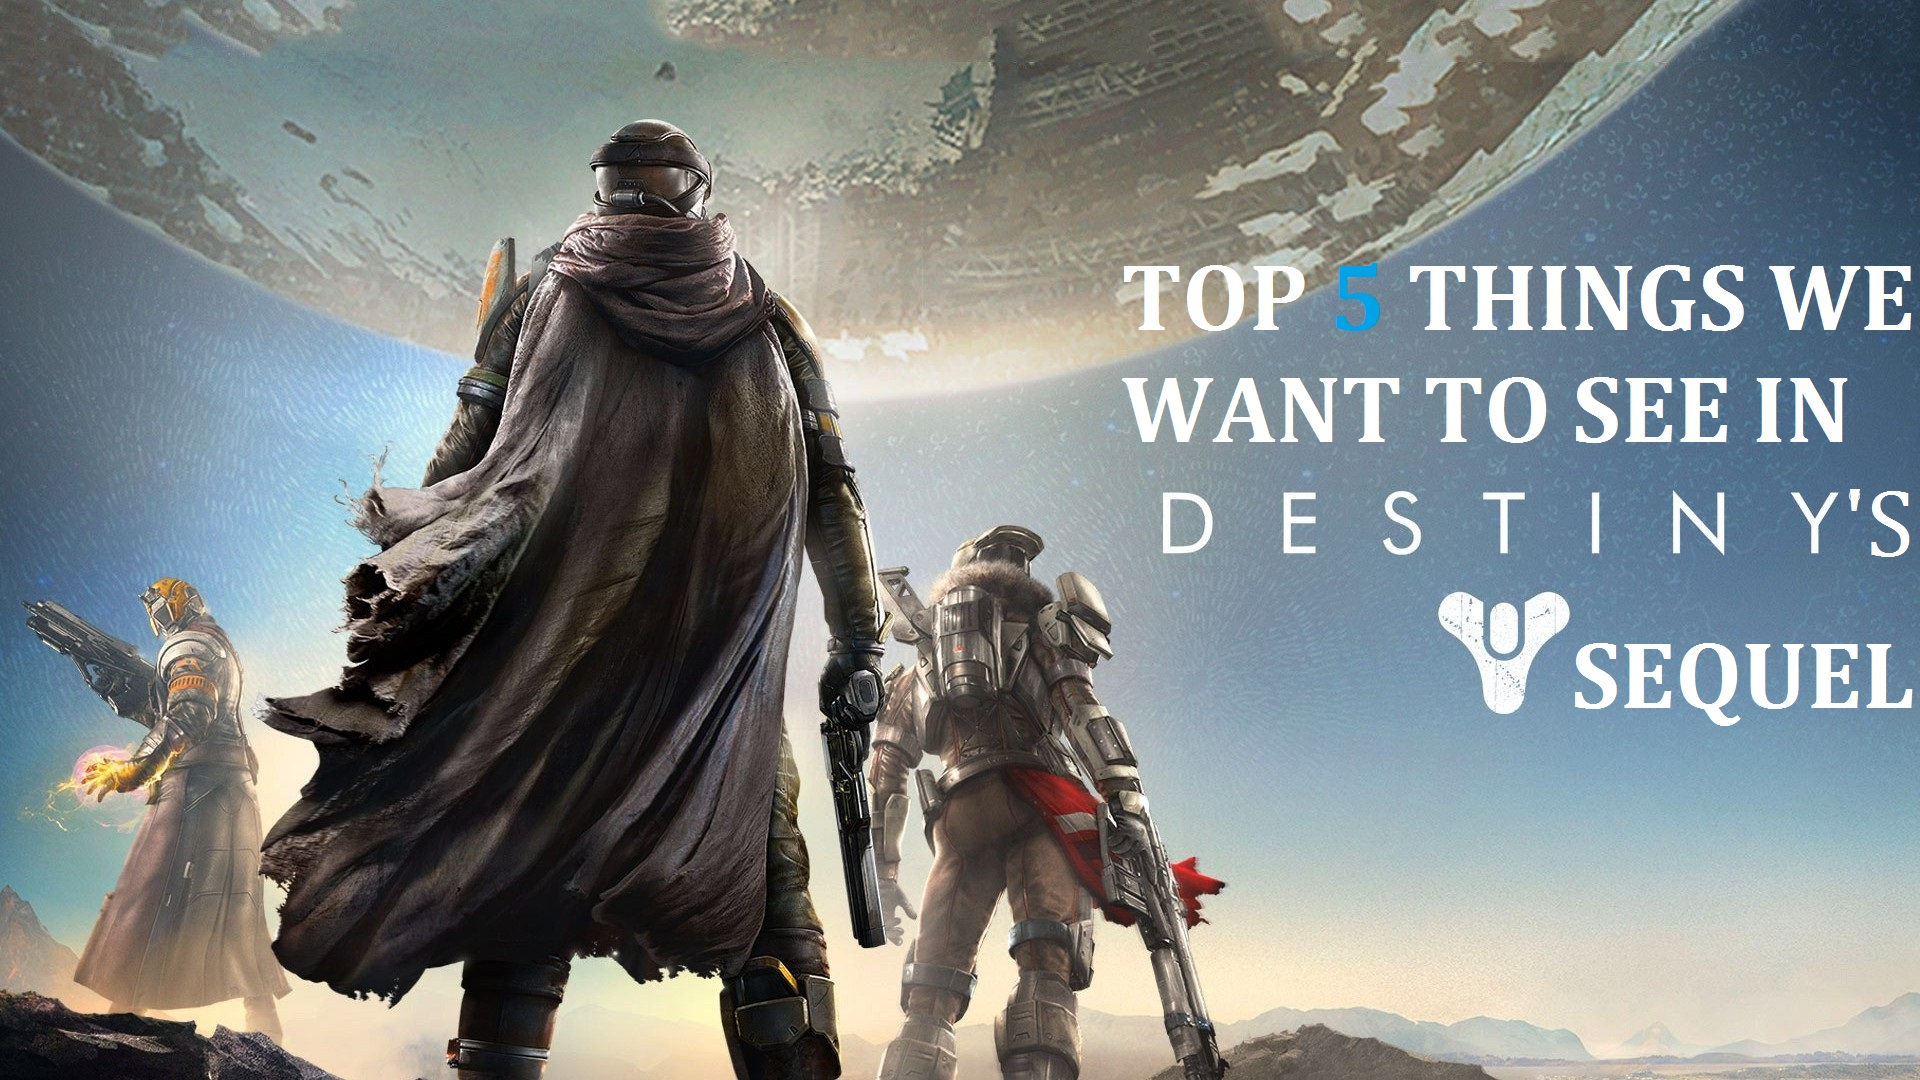 Top 5 Things We'd Like to See in Destiny 2